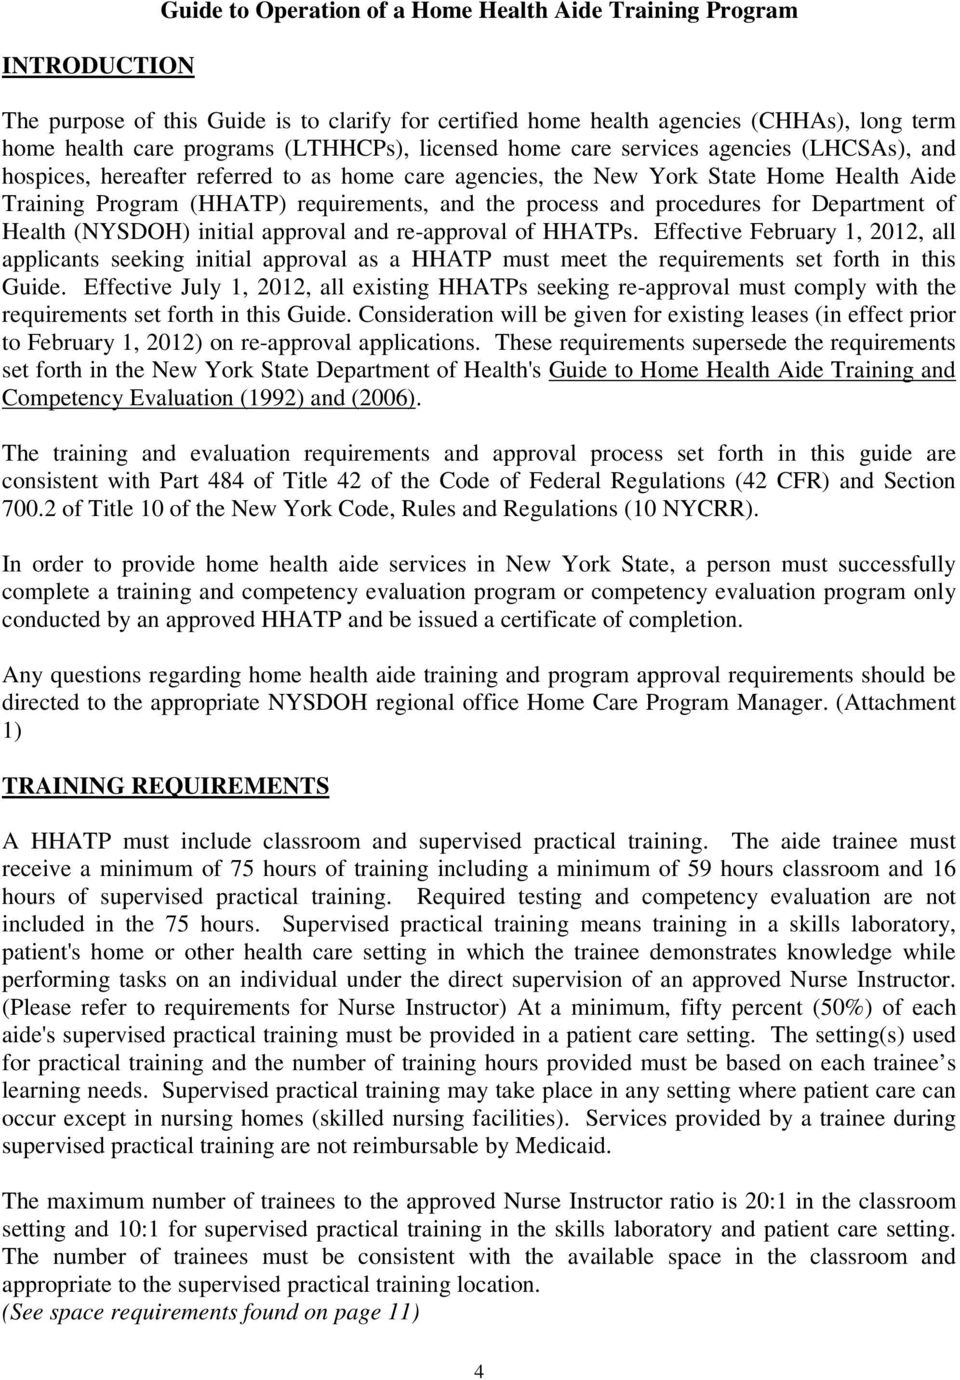 process and procedures for Department of Health (NYSDOH) initial approval and re-approval of HHATPs.